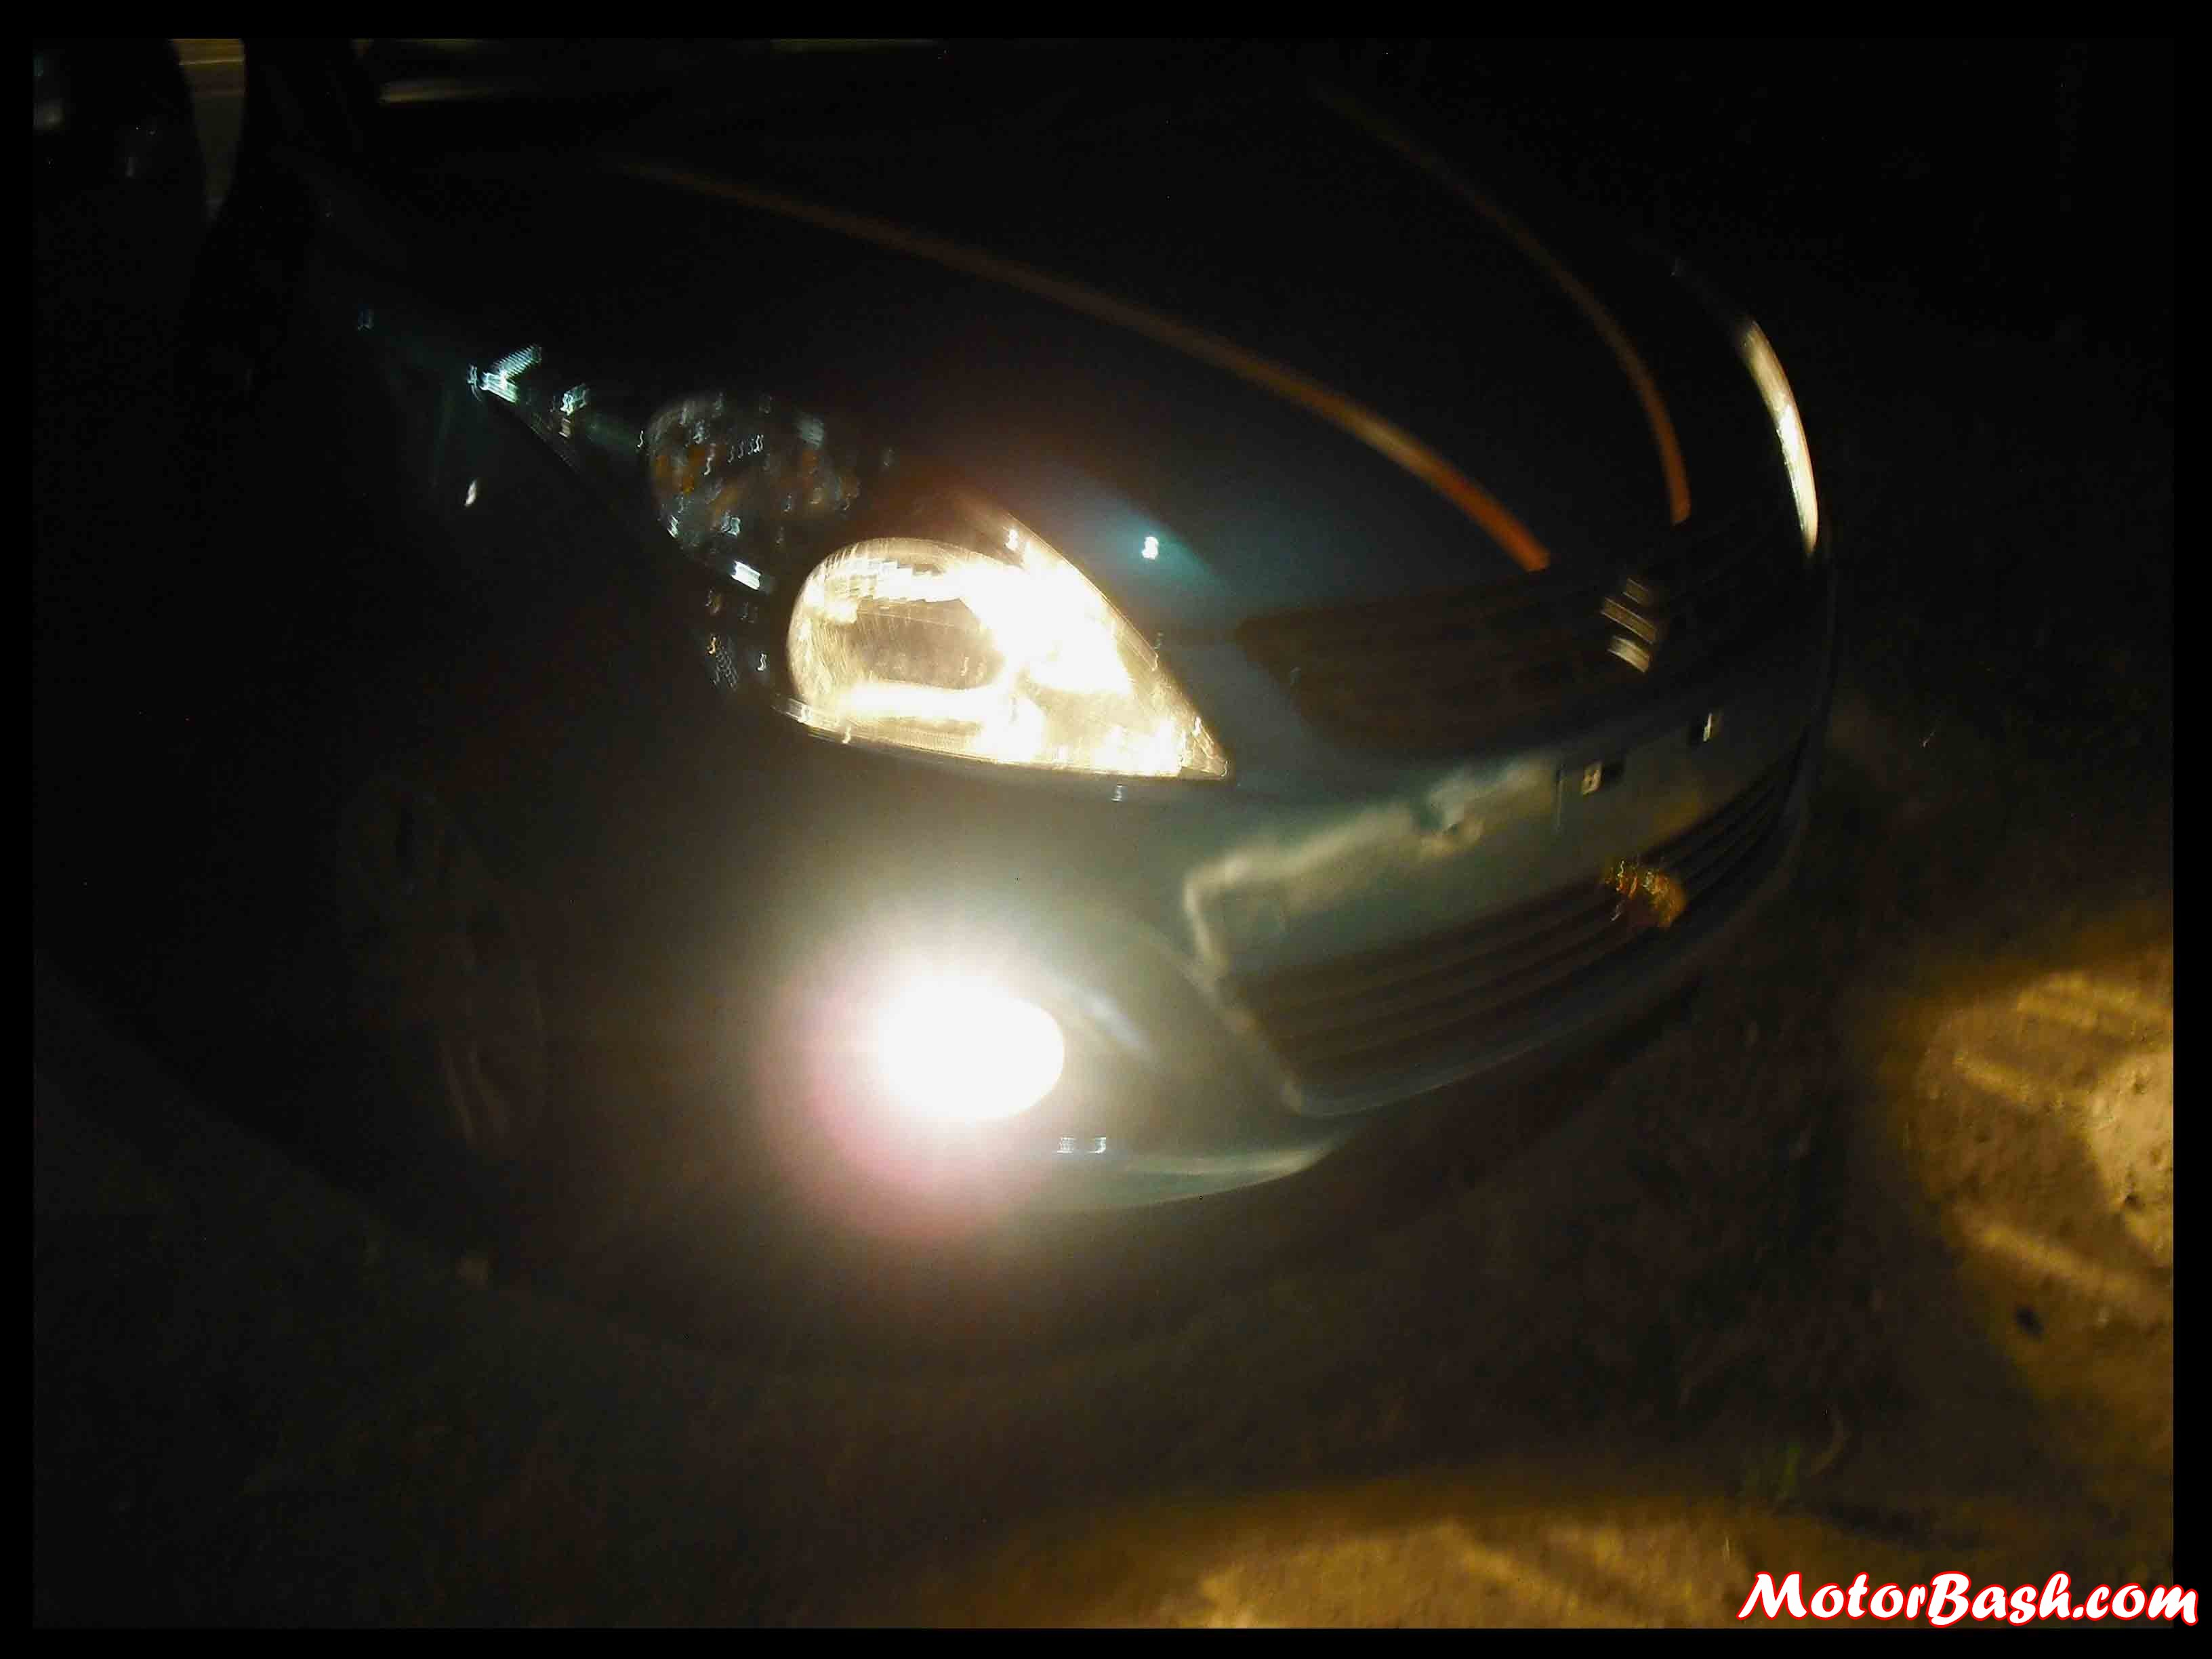 Headlamps beams have good penetration and flow to help you drive safe on highways. Fog lamps are mere parking bulbs literally.